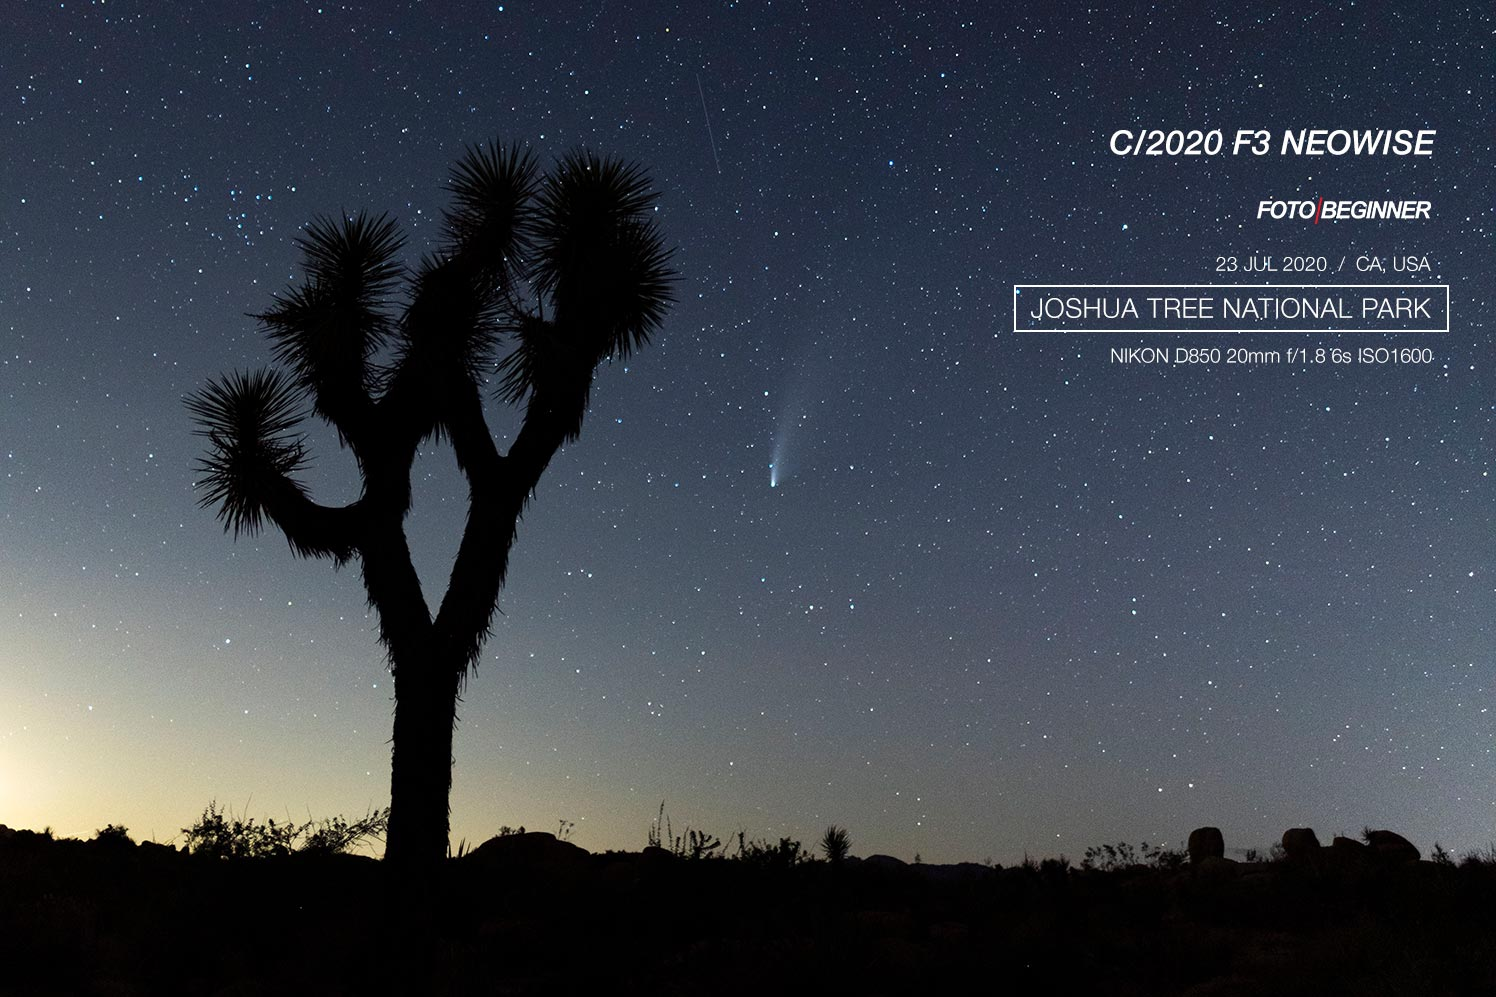 Joshua tree with neowise comet